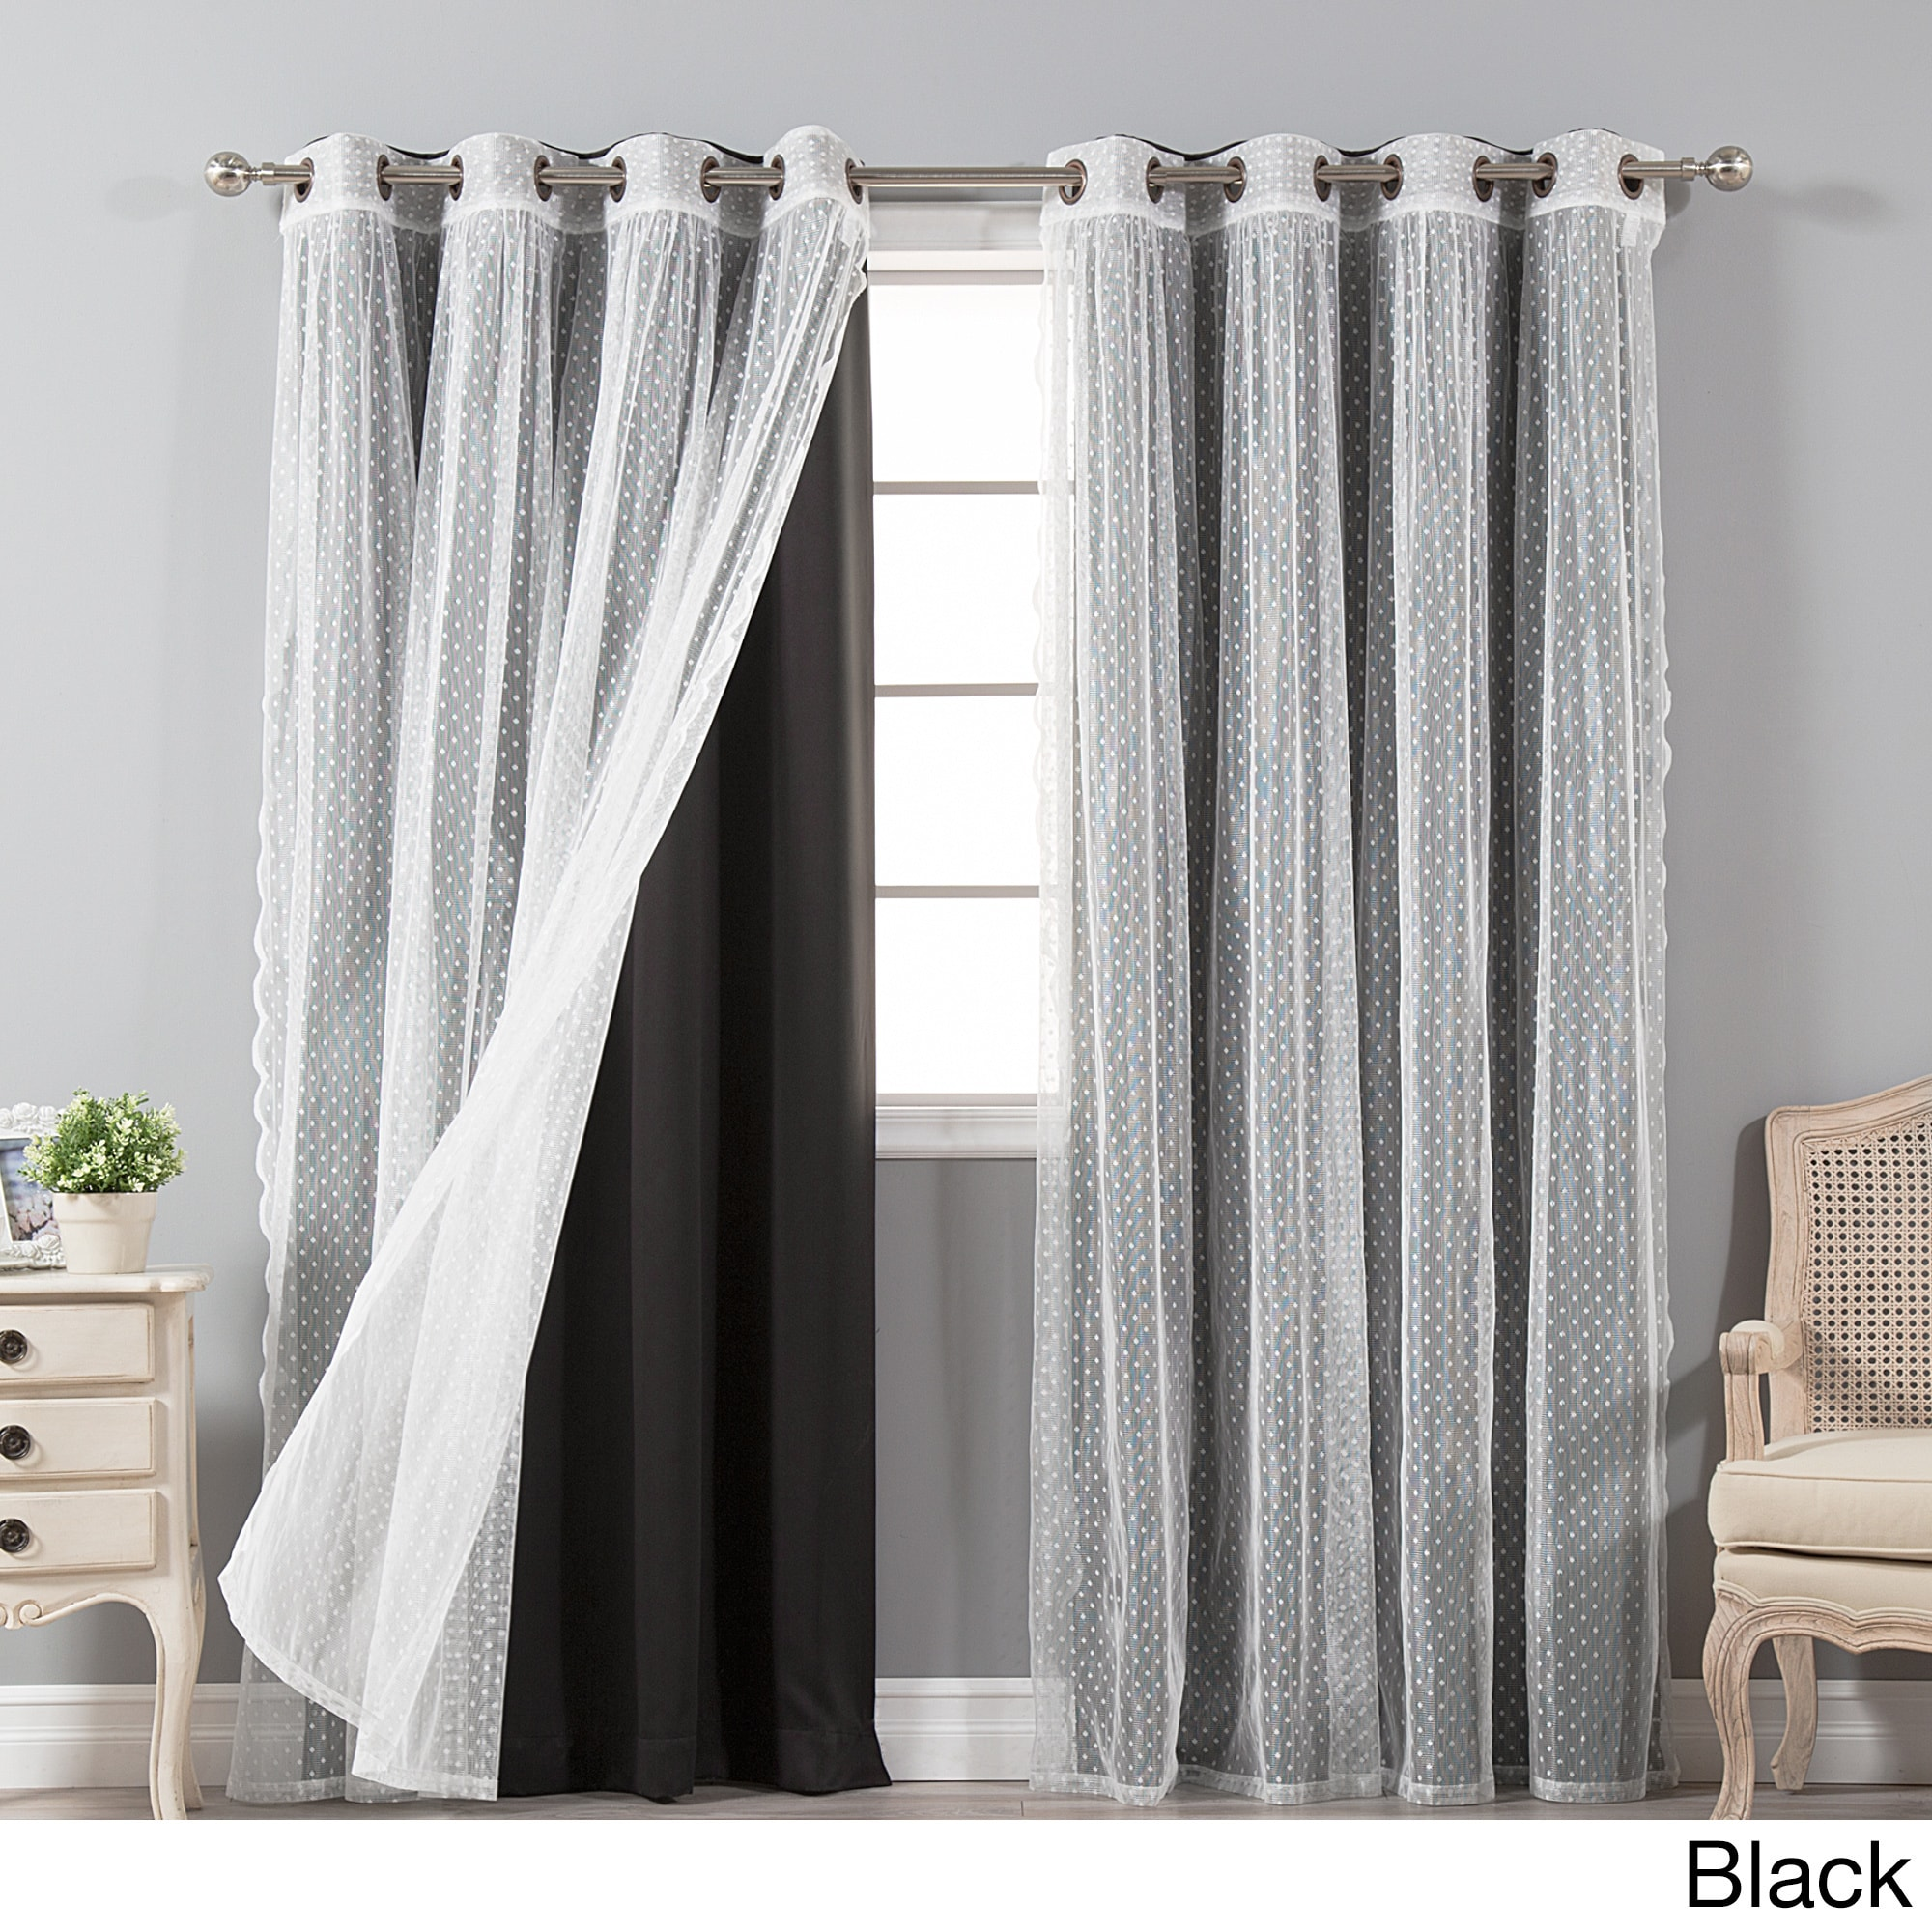 curtain tergaline panel solid treatments grommet reviews curtains wayfair trading pdx ricardo window sheer single